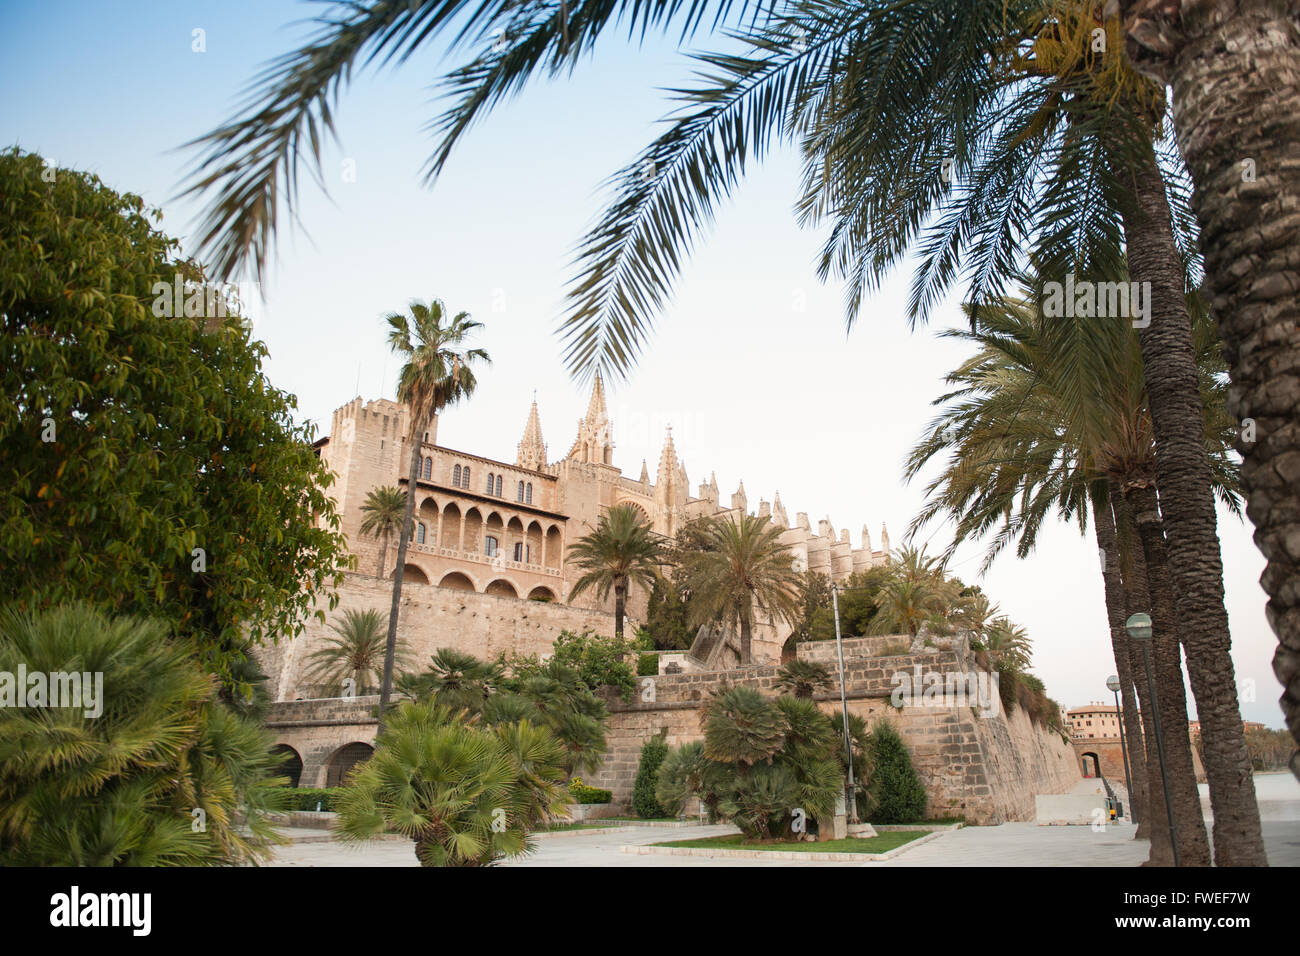 Cathedral La Seu, Palma de Mallorca, Mallorca, Balearic Islands, Spain - Stock Image